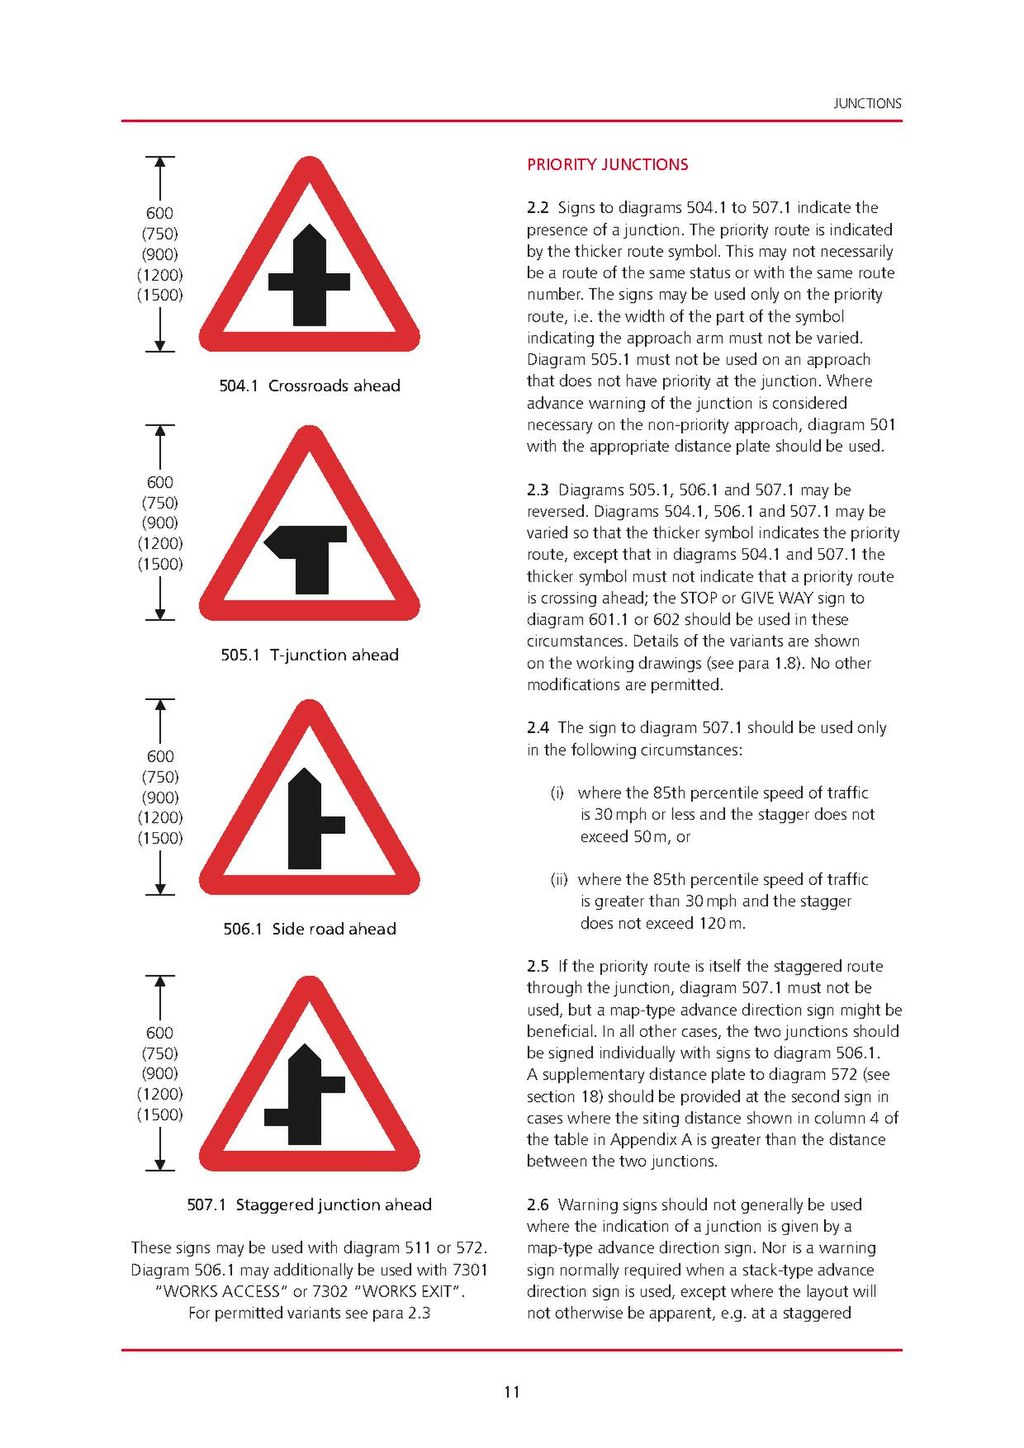 what are non-manual signs